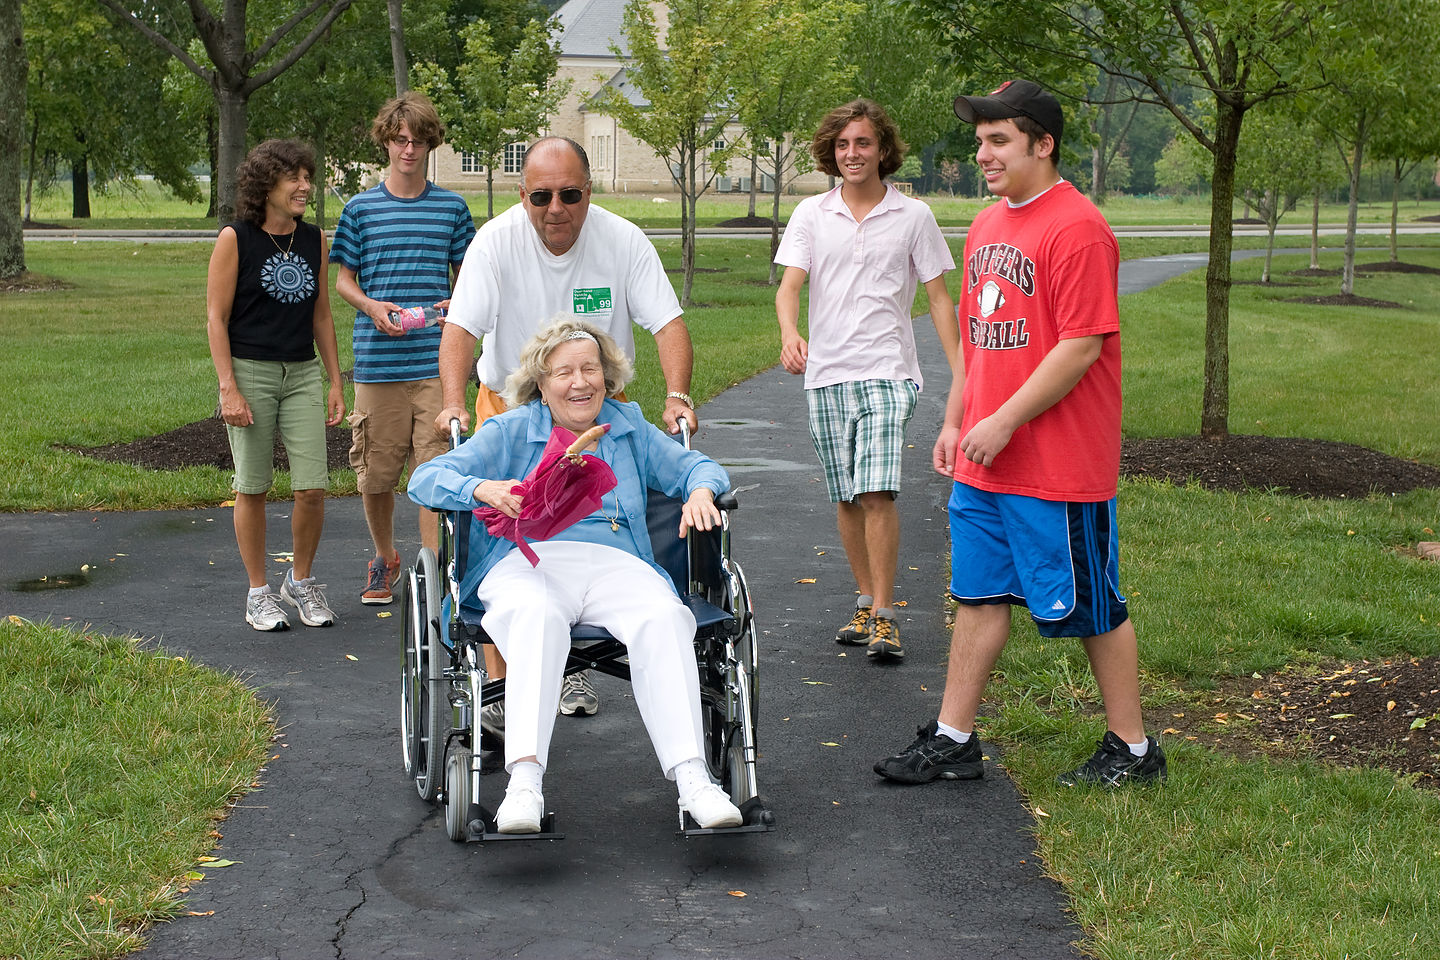 Taking Hedy for a stroll in the park